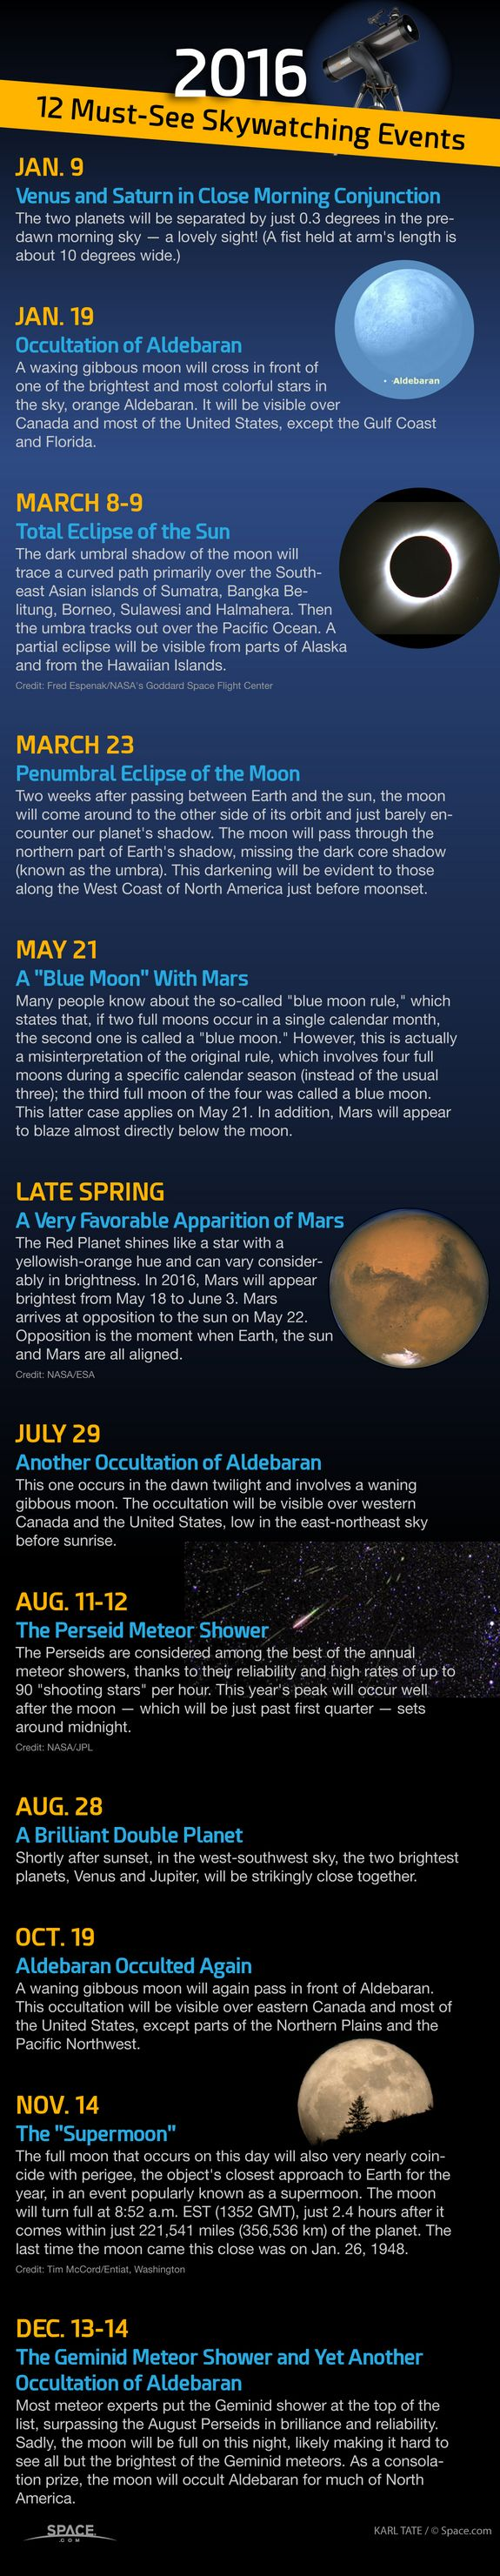 Chart of events to watch in the sky in 2016.